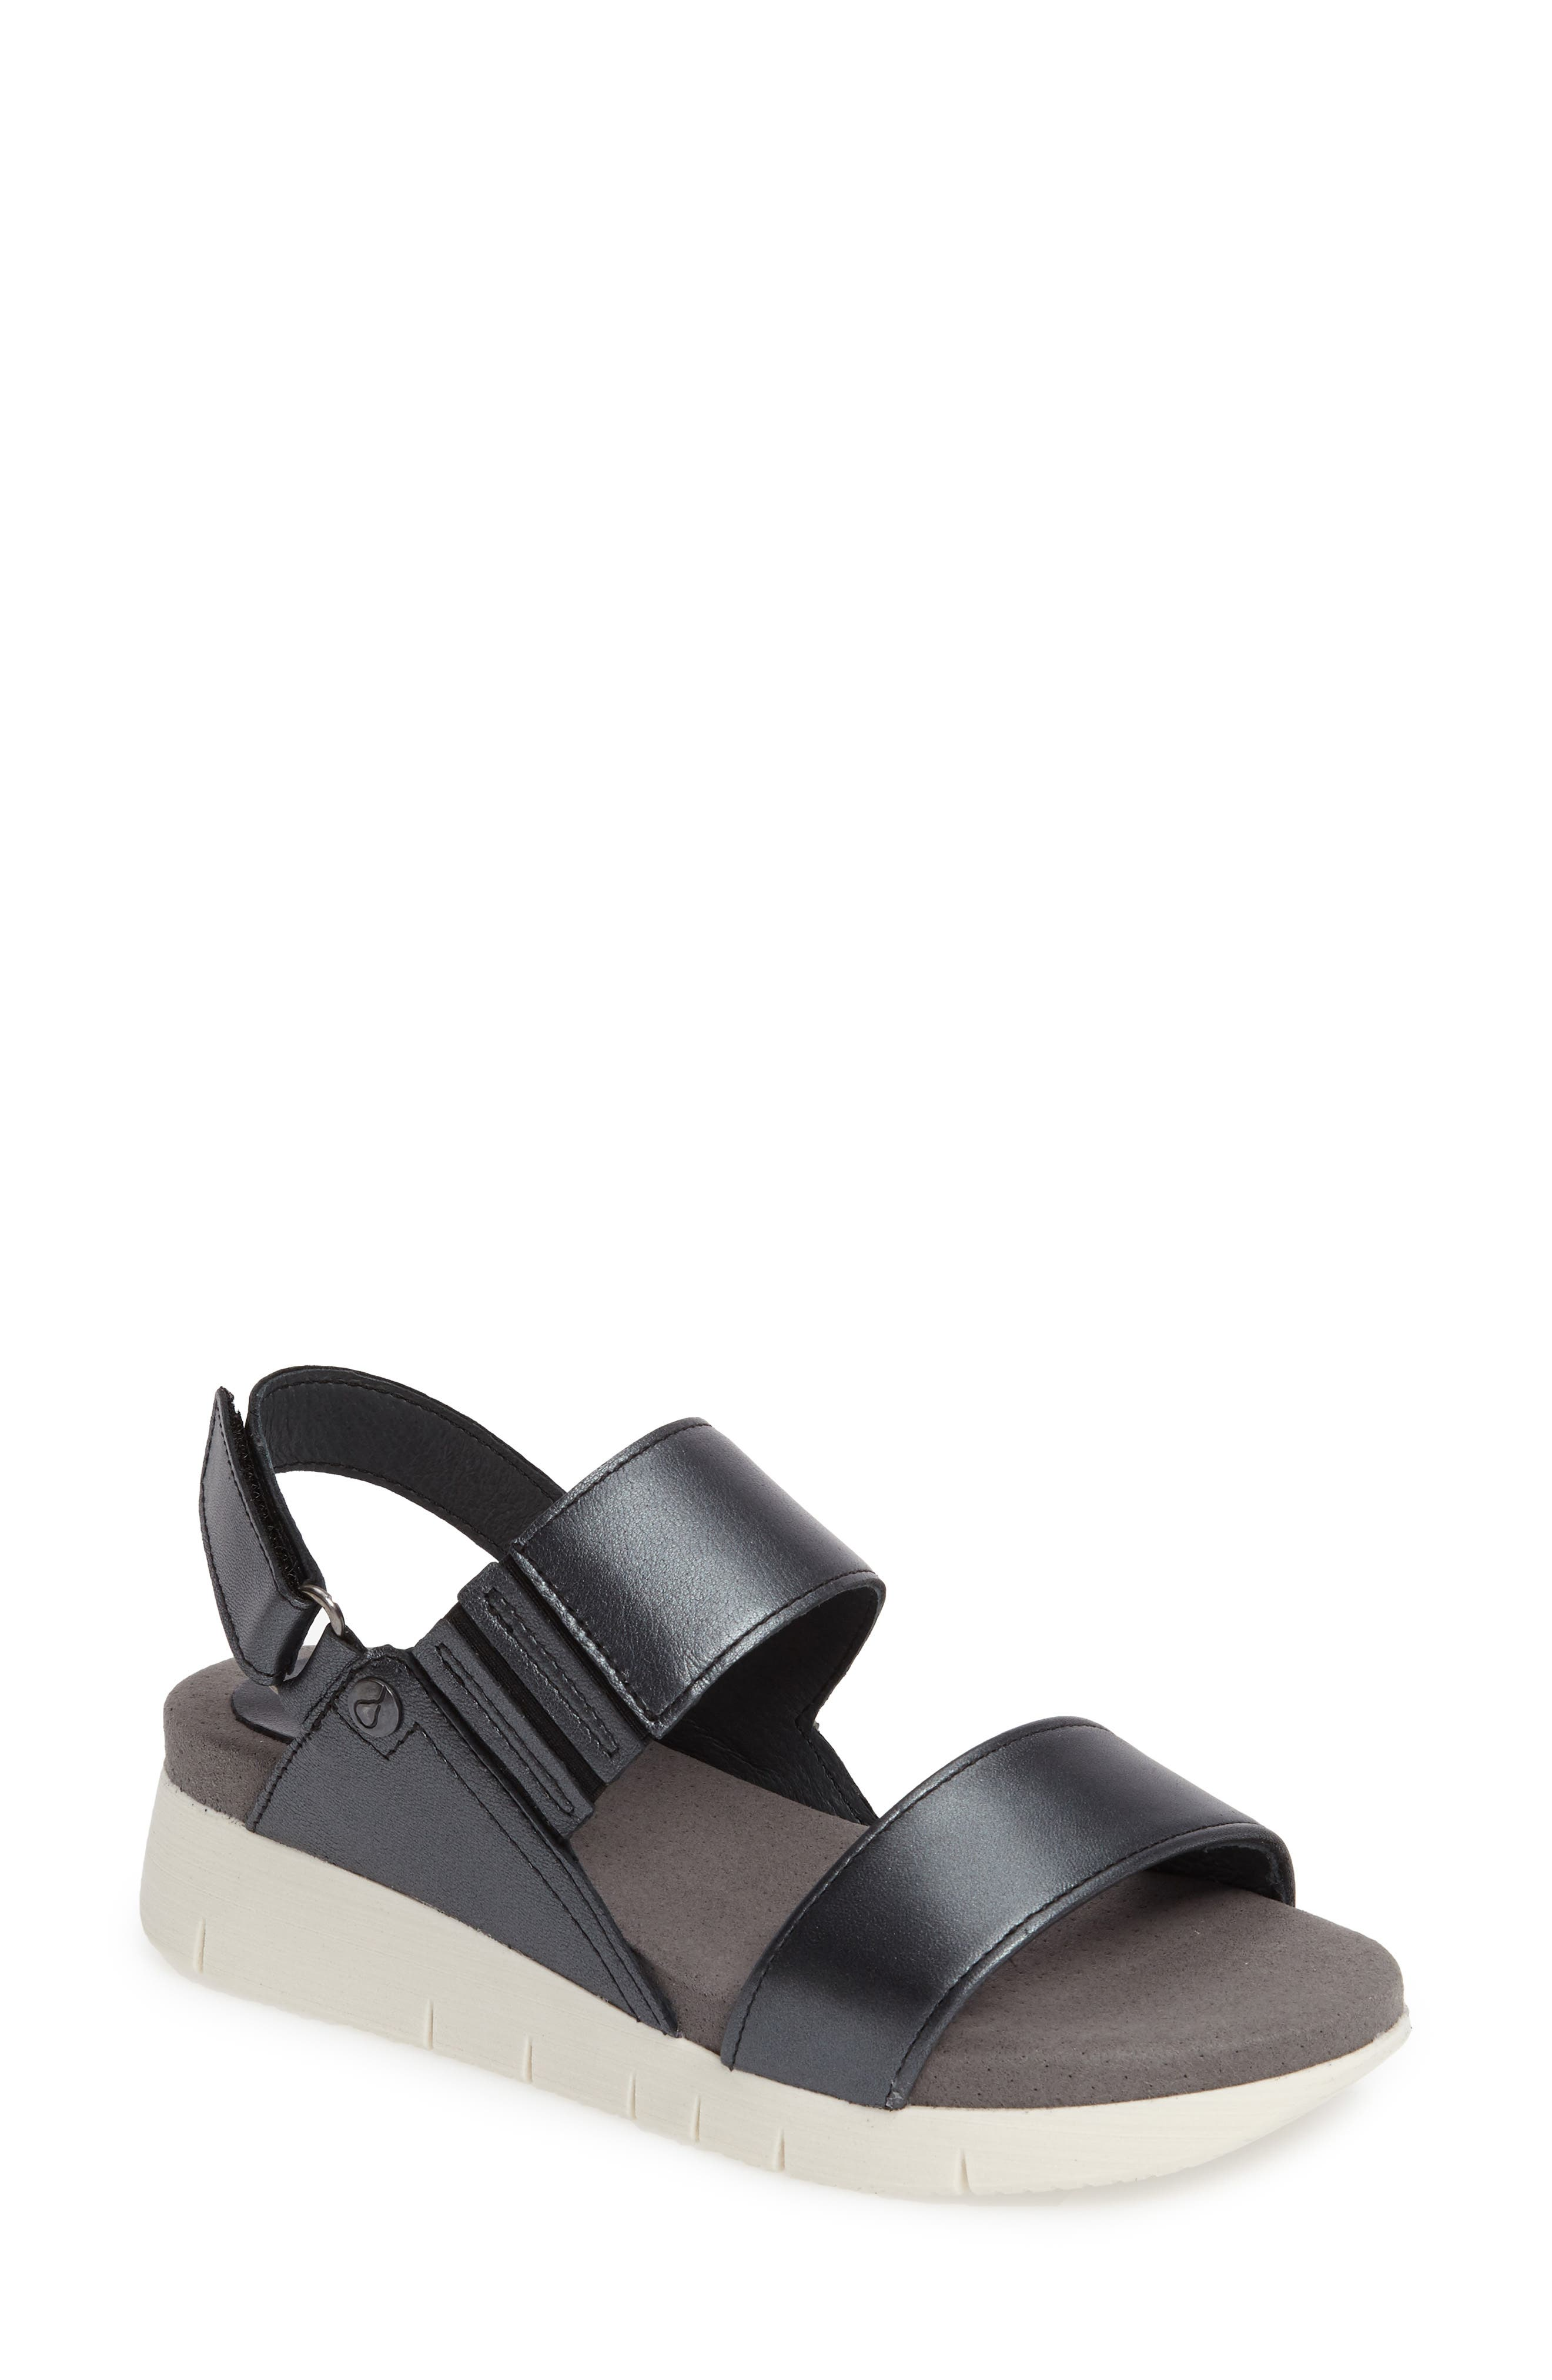 Payge Wedge Sandal,                         Main,                         color, Black Leather